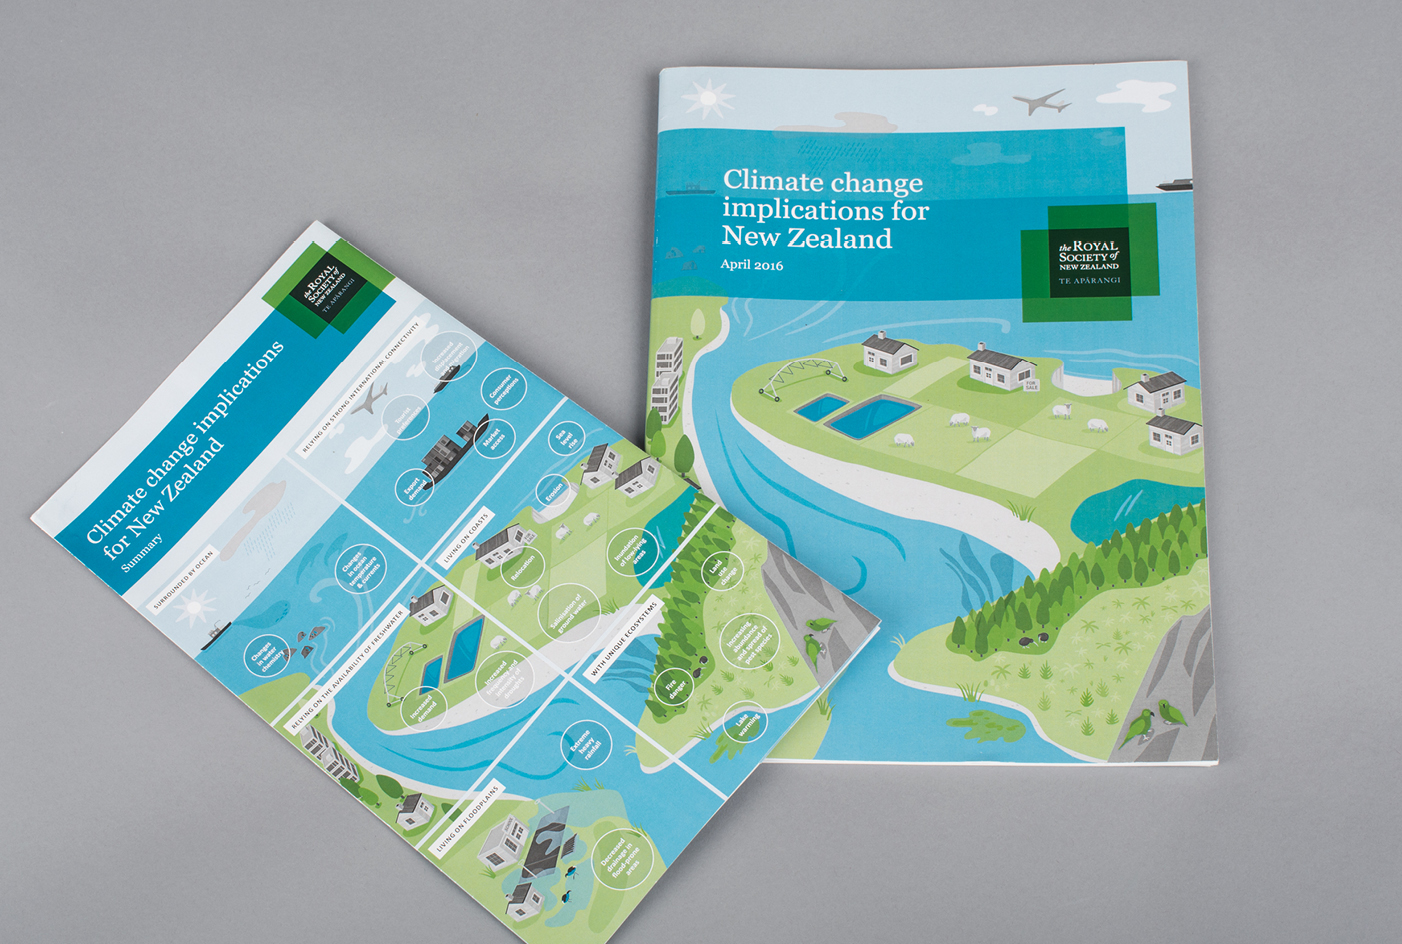 Climate Change Implications booklet and report